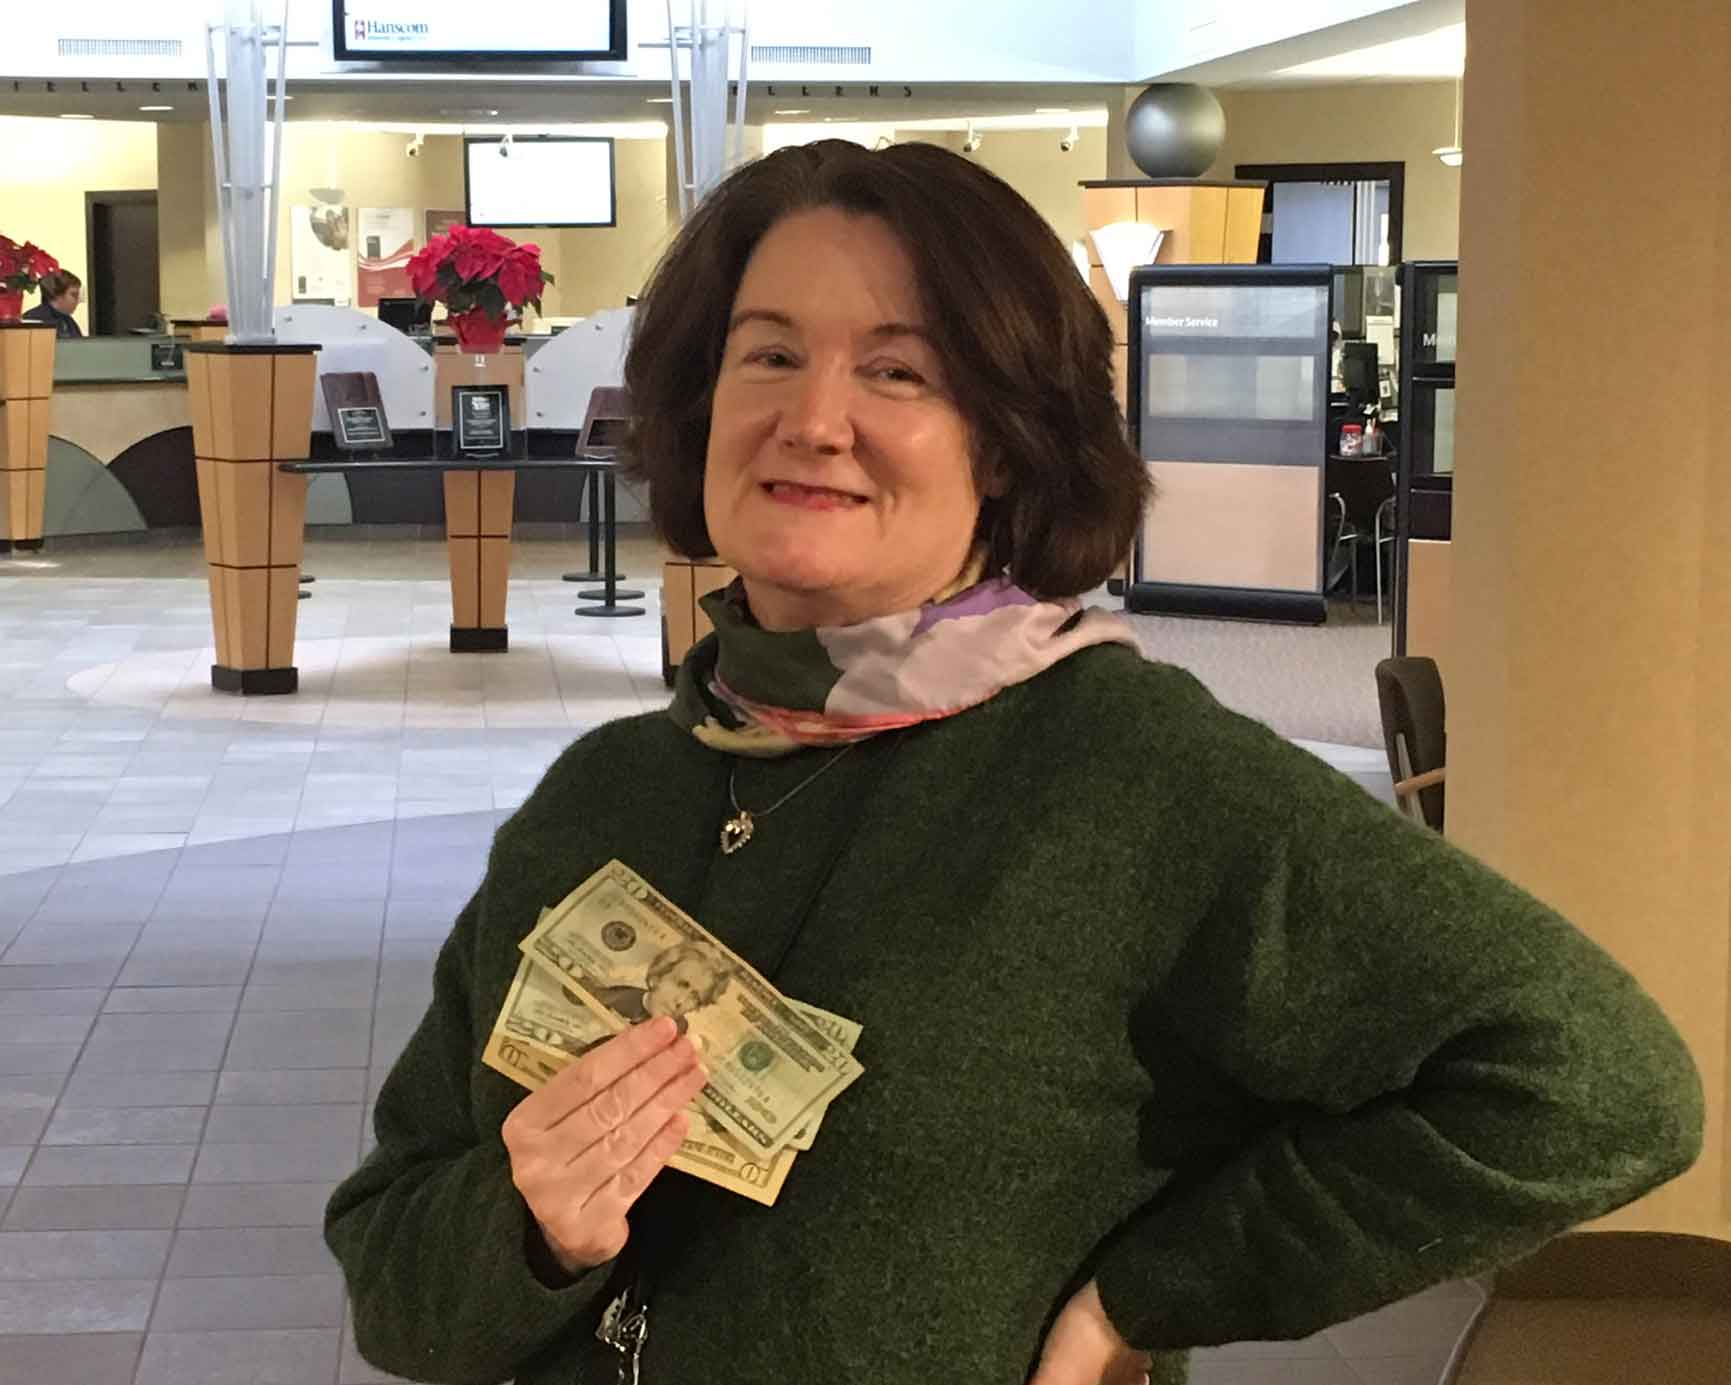 woman holding cash in credit union